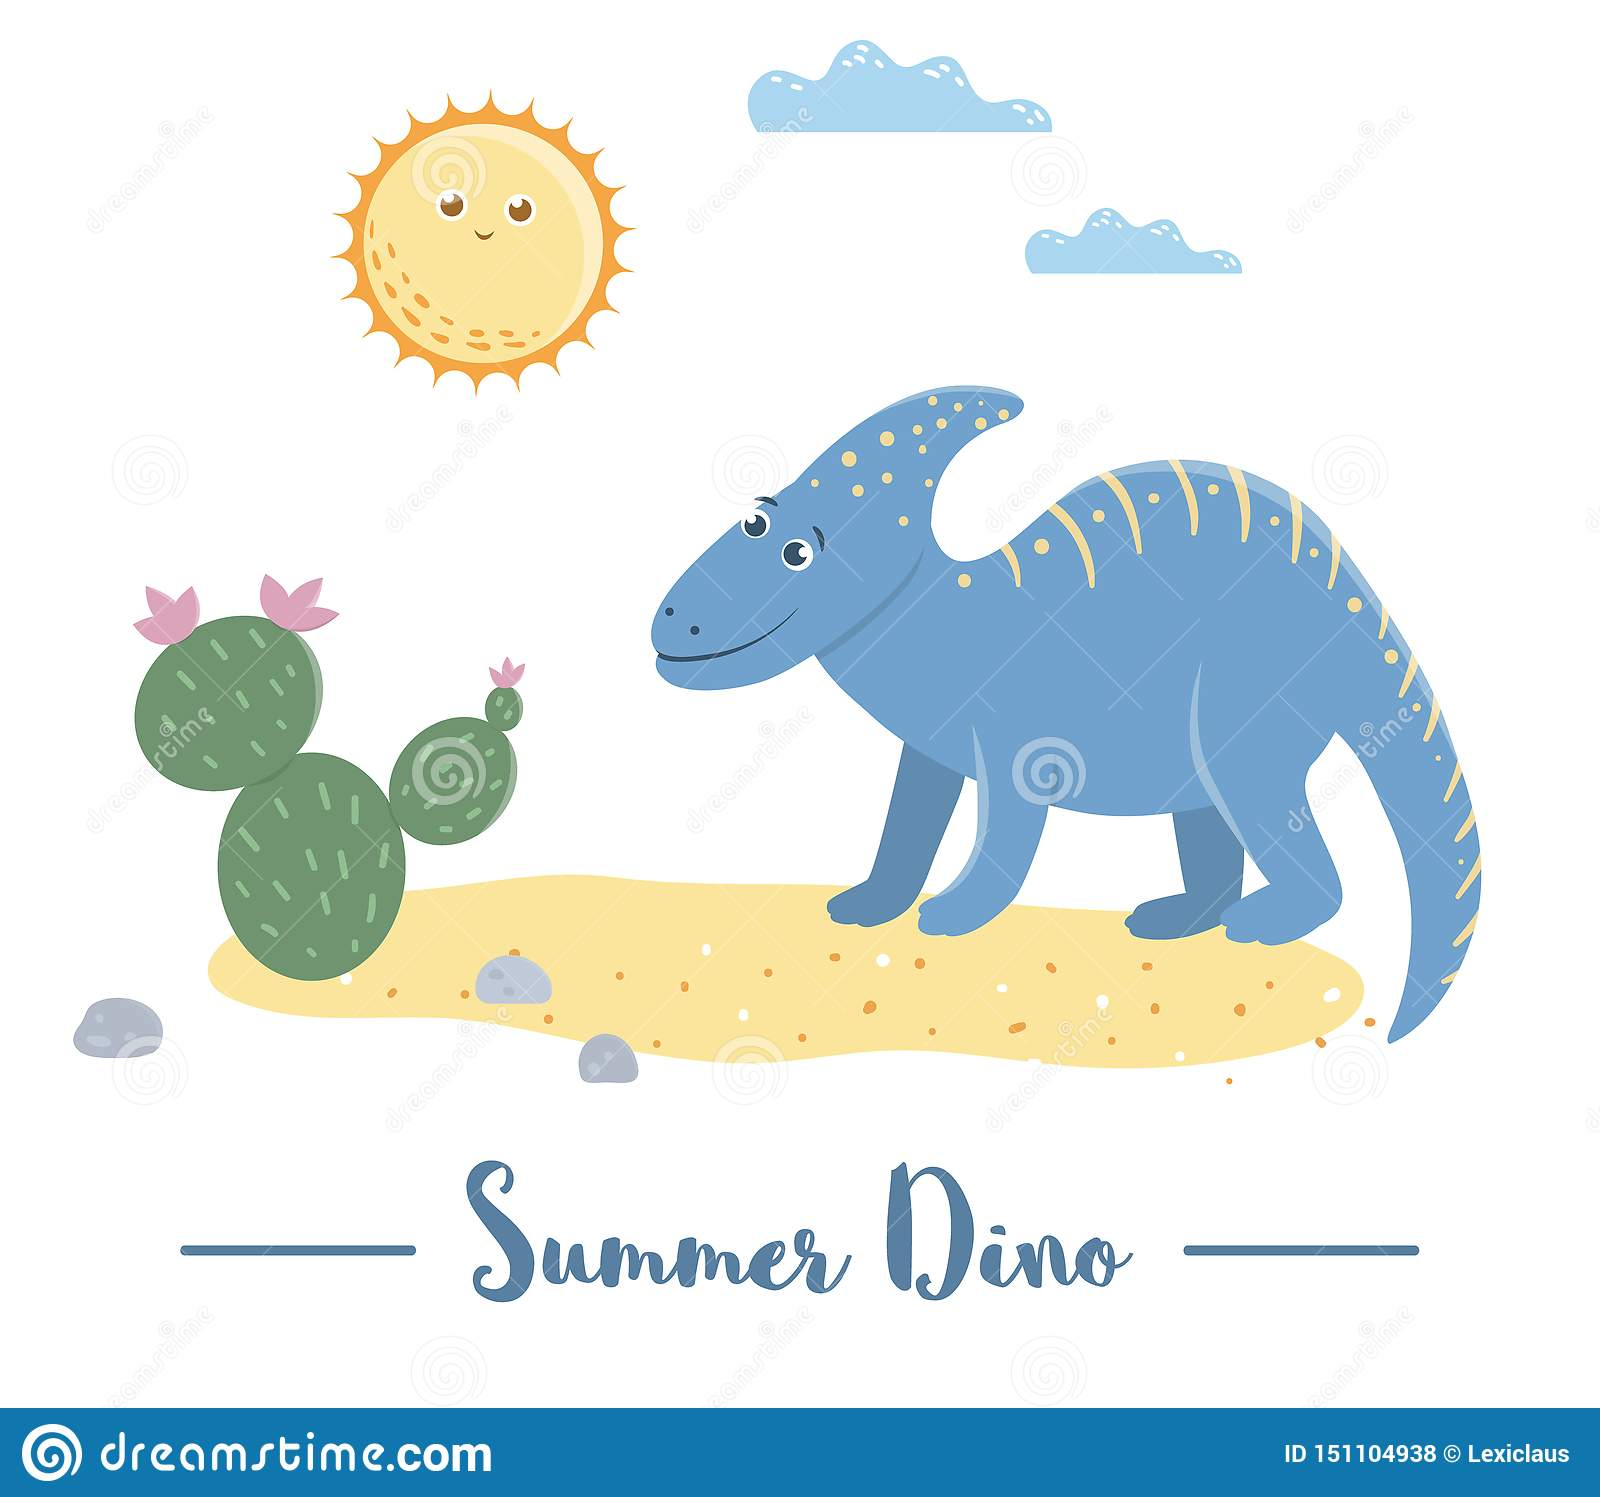 Illustration Of Dino In A Desert Under The Sun With Cactus Summer Scene With Cute Dinosaur Funny Prehistoric Reptiles Print For Stock Vector Illustration Of Dinosaur Parasaurolophus 151104938